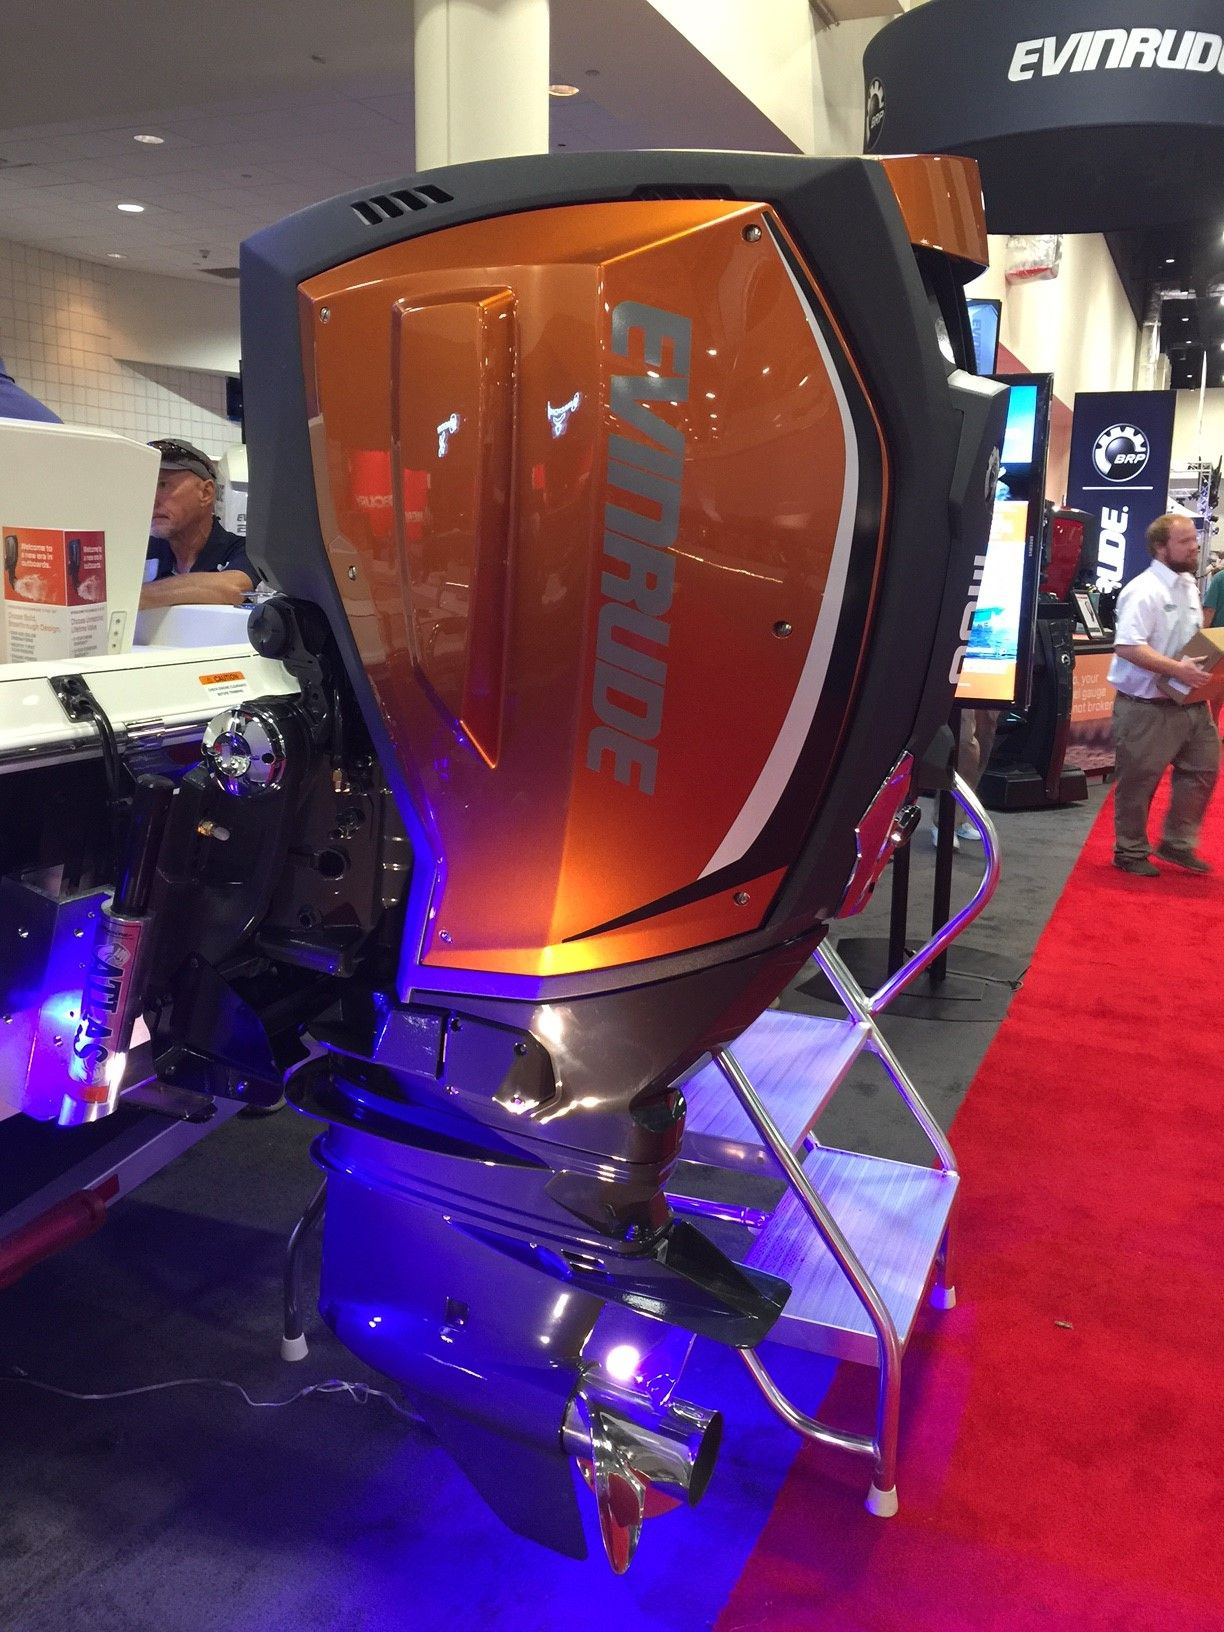 Evinrude showed off its new G2 E-TEC two-stroke outboards at